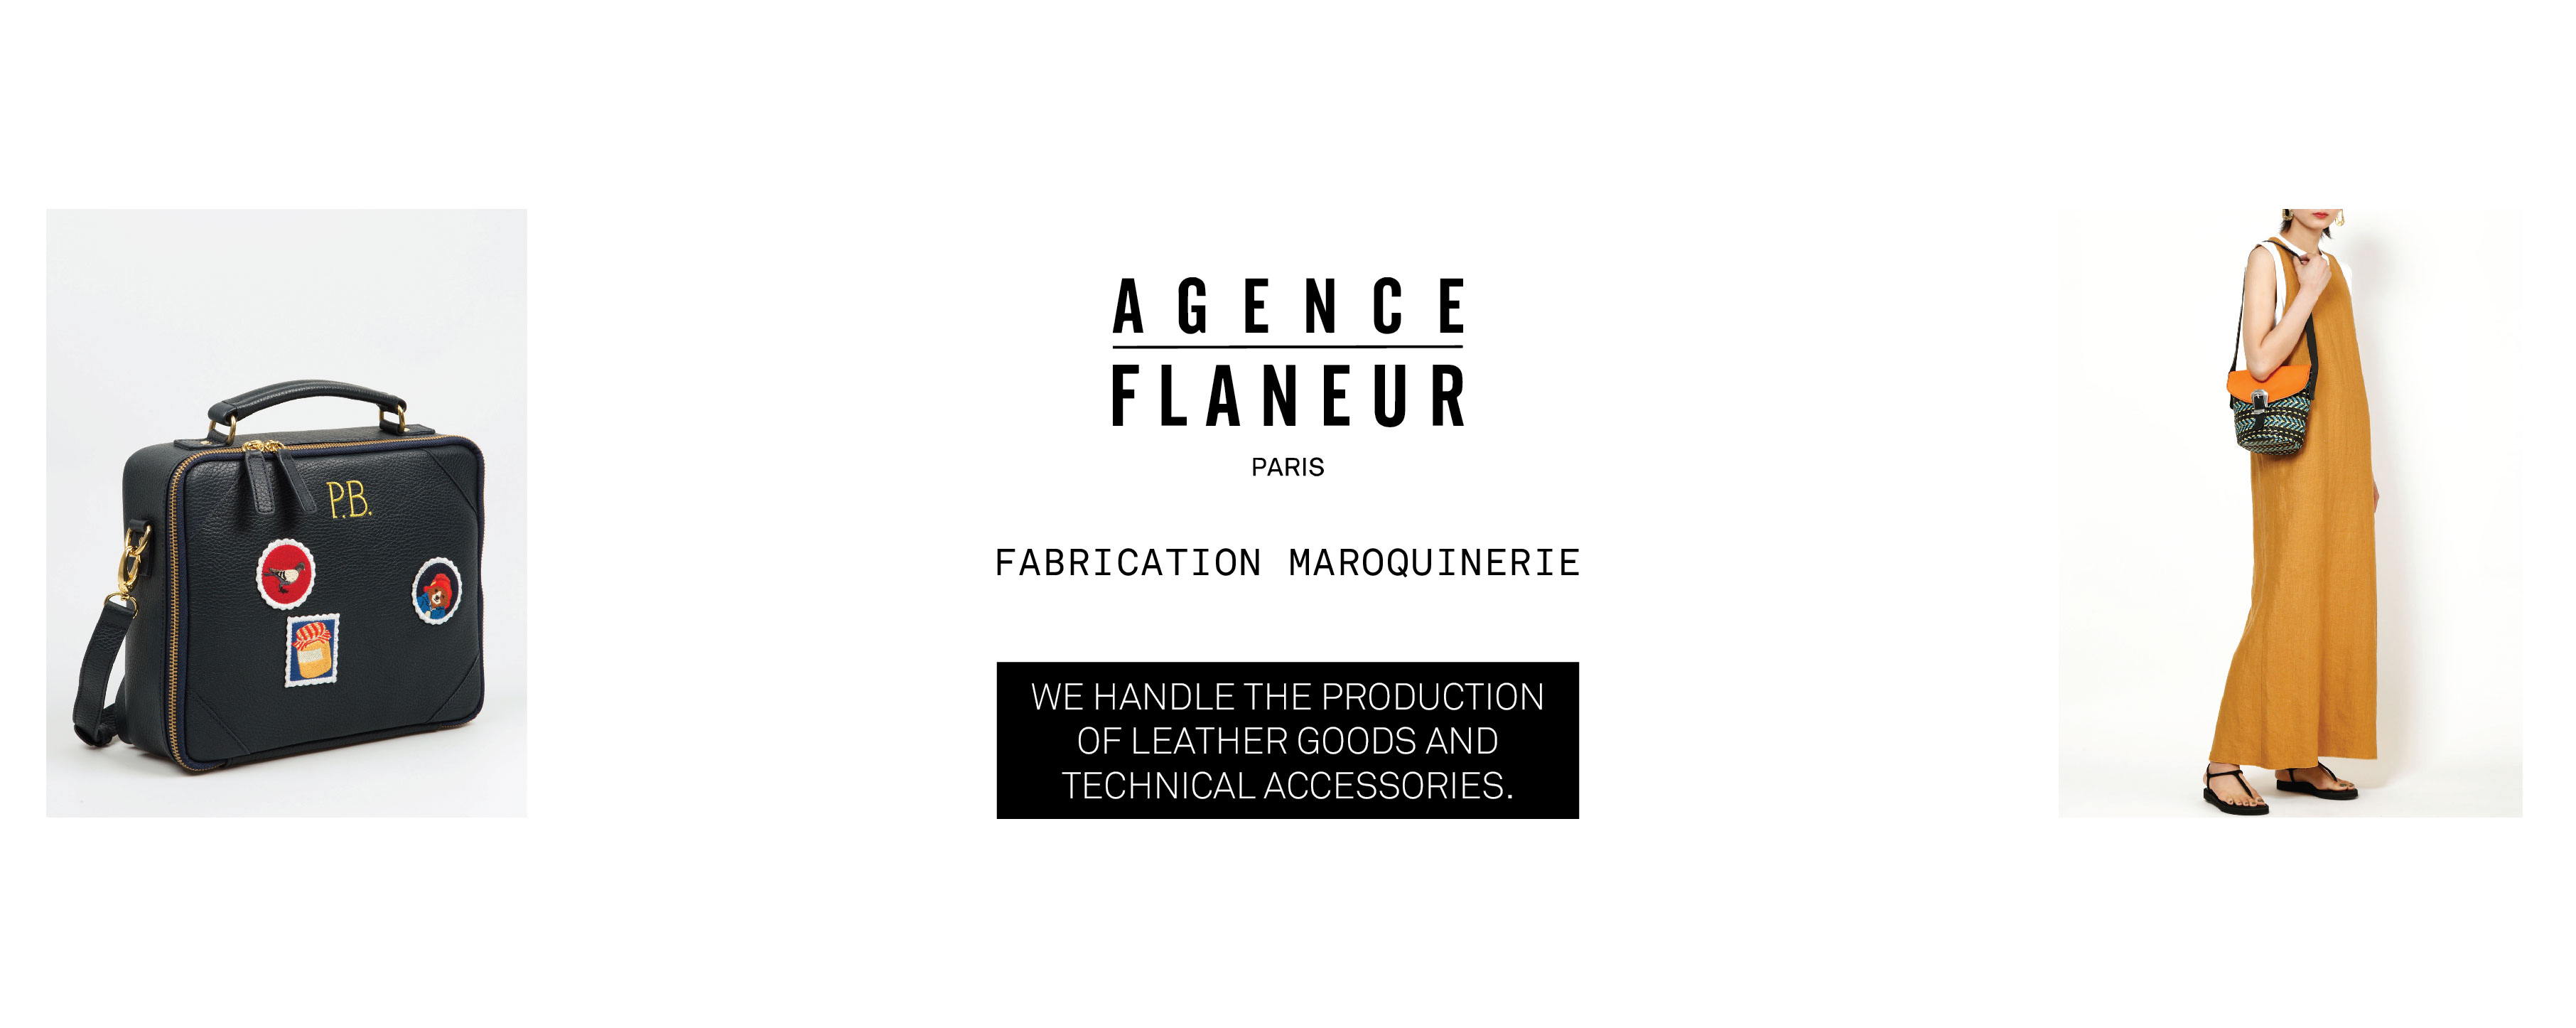 AGENCE FLANEUR – FABRICANT SAC MAROQUINERIE MASQUES TOTEBAG ACCESSOIRES